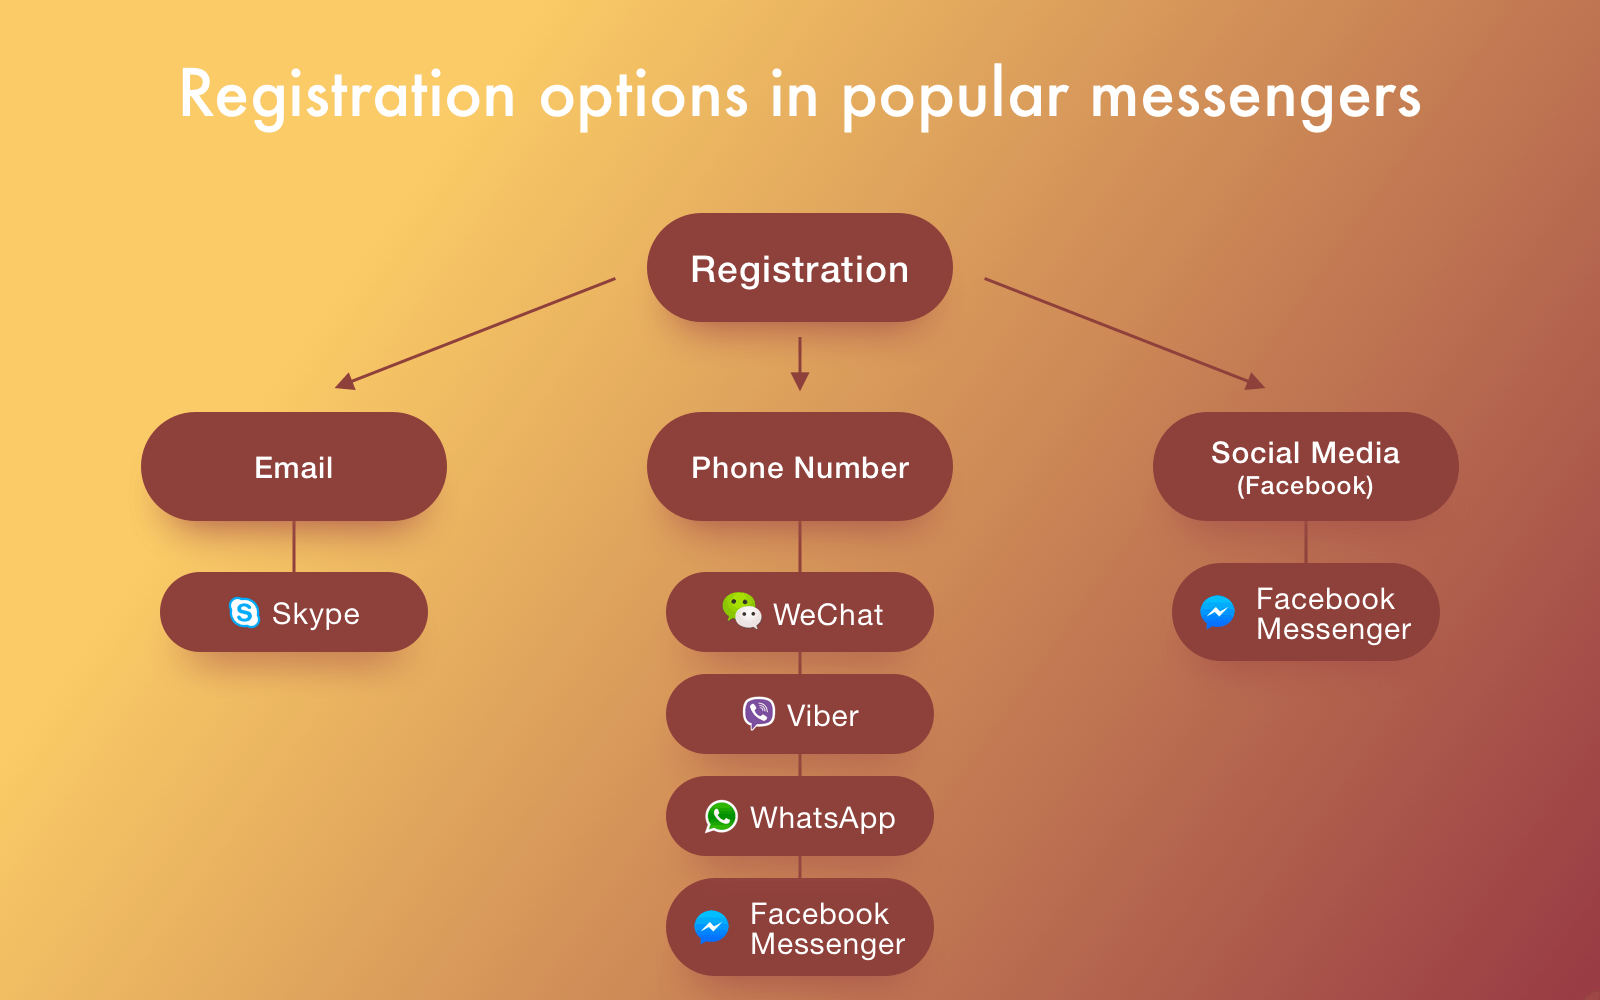 Example of registration options in different popular messengers